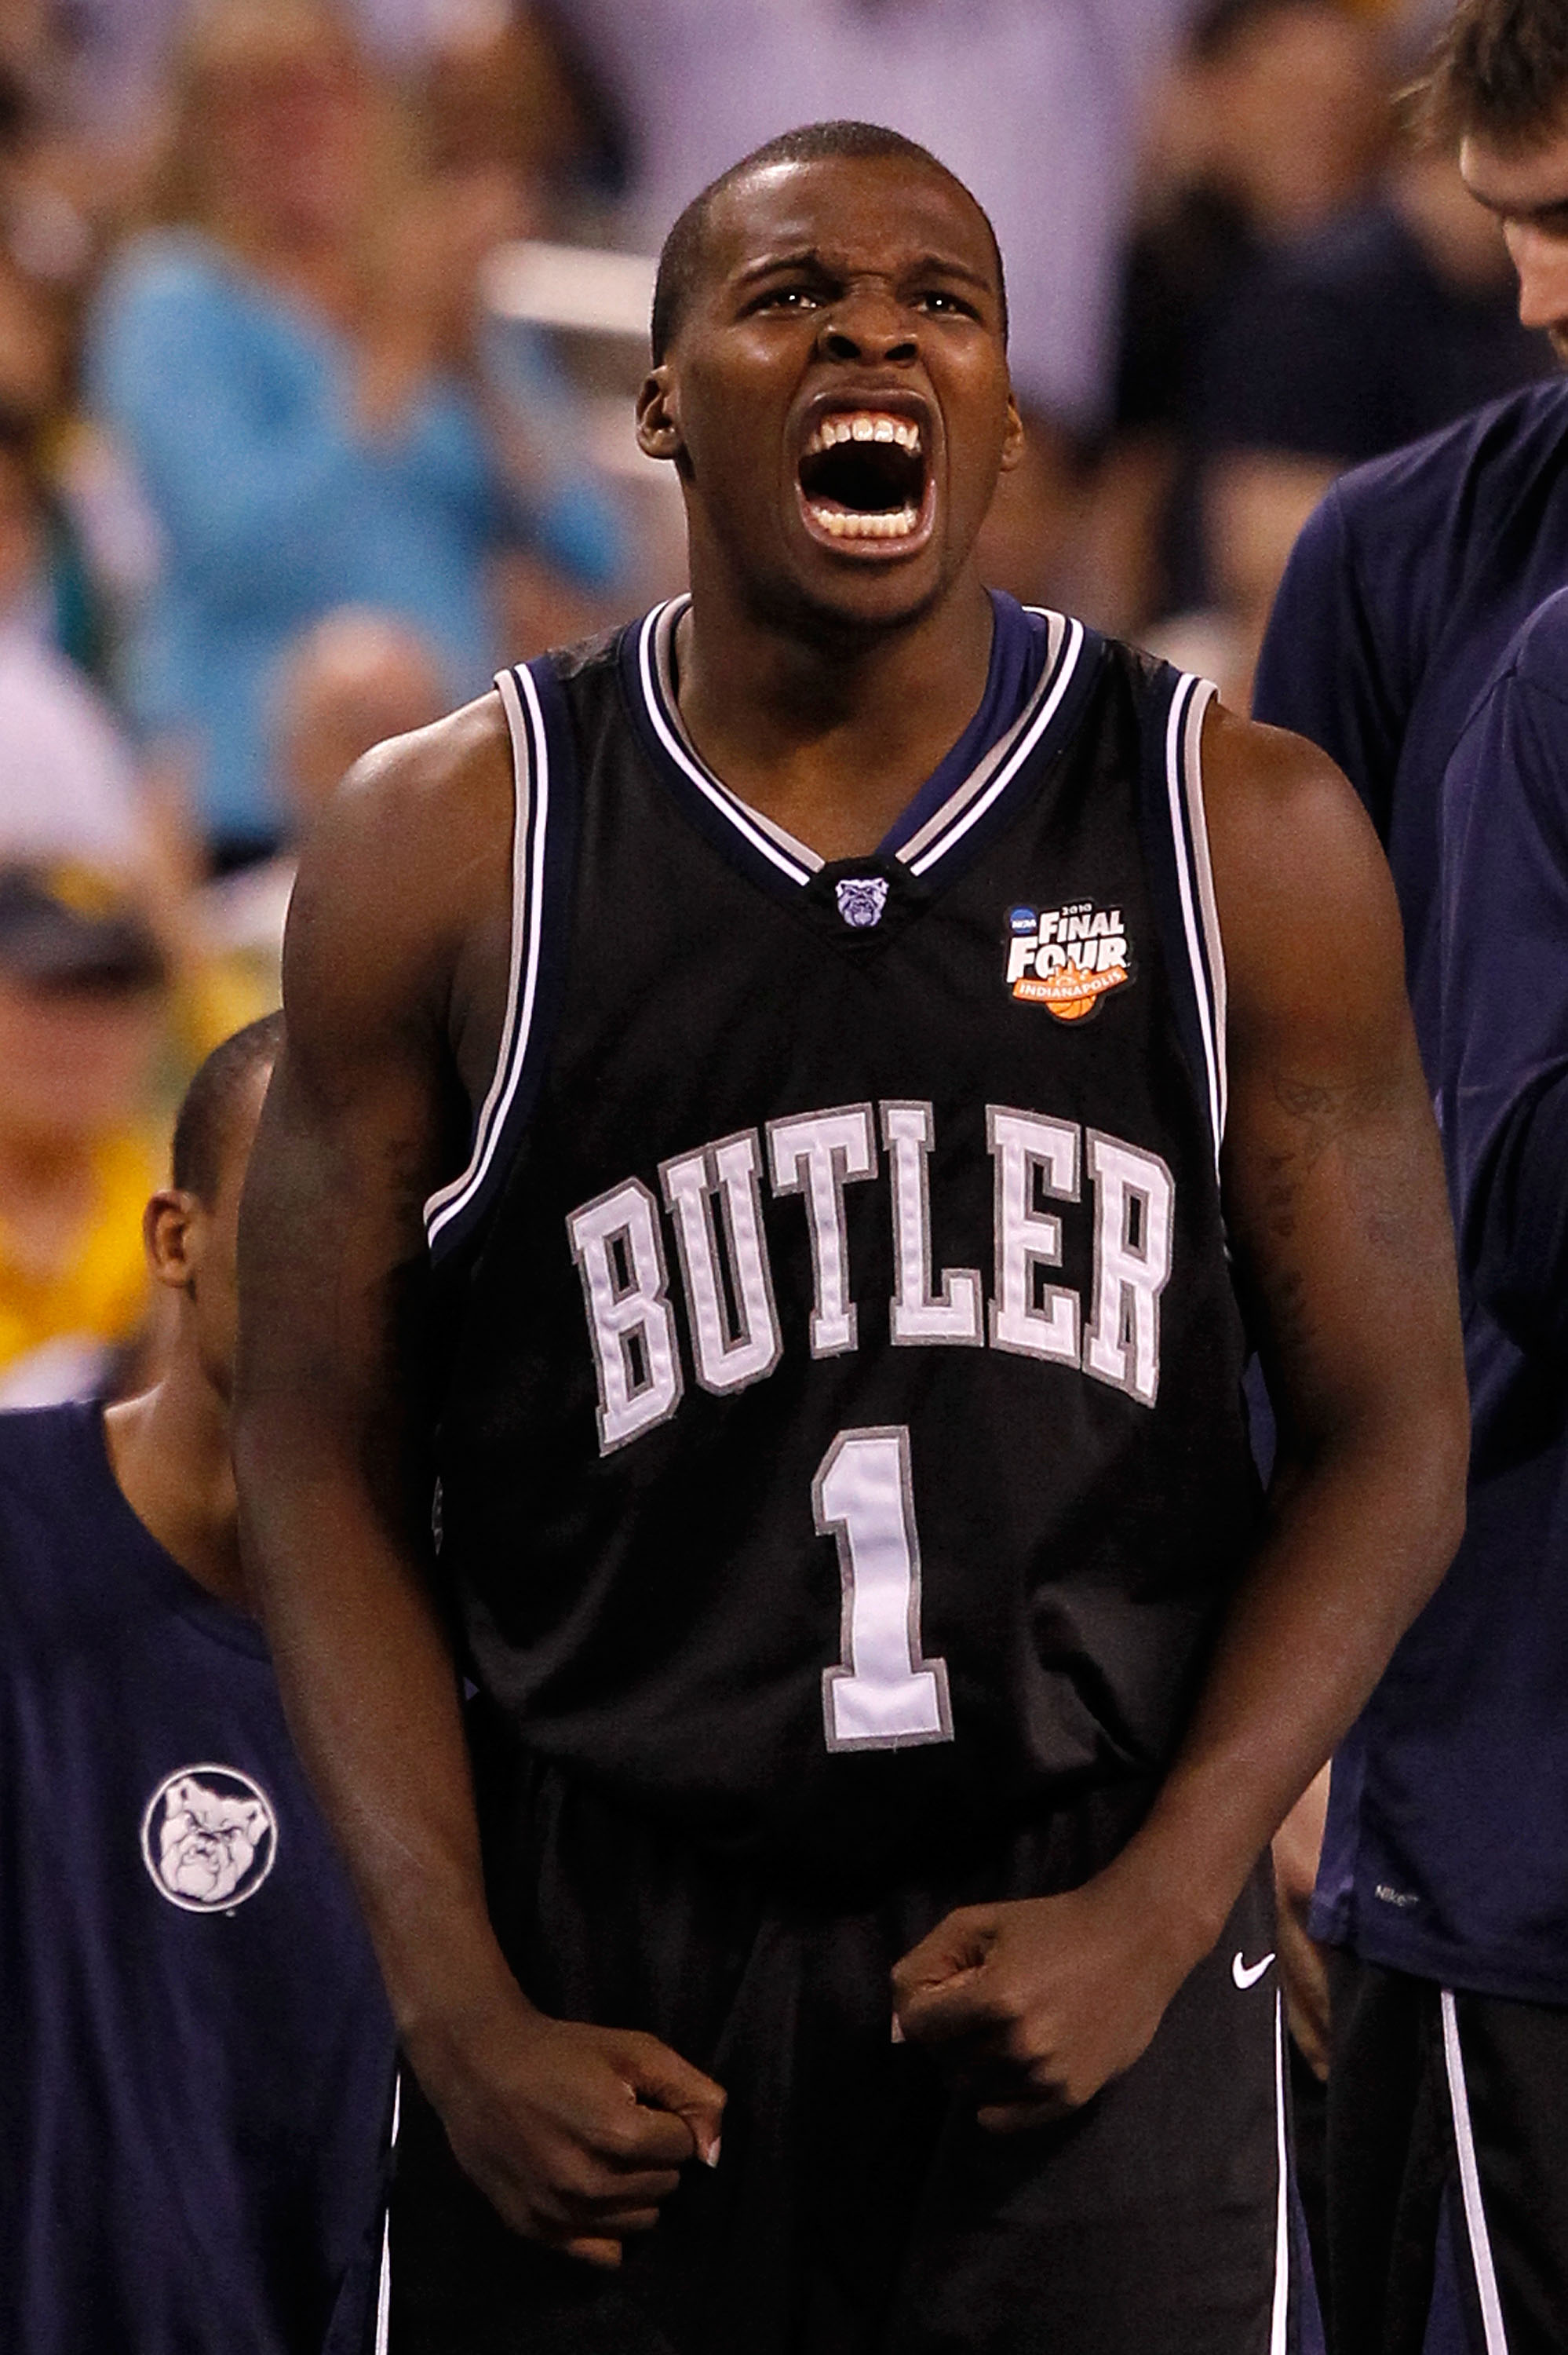 INDIANAPOLIS - APRIL 03:  Shelvin Mack #1 of the Butler Bulldogs celebrates on the bench against the Michigan State Spartans during the National Semifinal game of the 2010 NCAA Division I Men's Basketball Championship on April 3, 2010 in Indianapolis, Ind